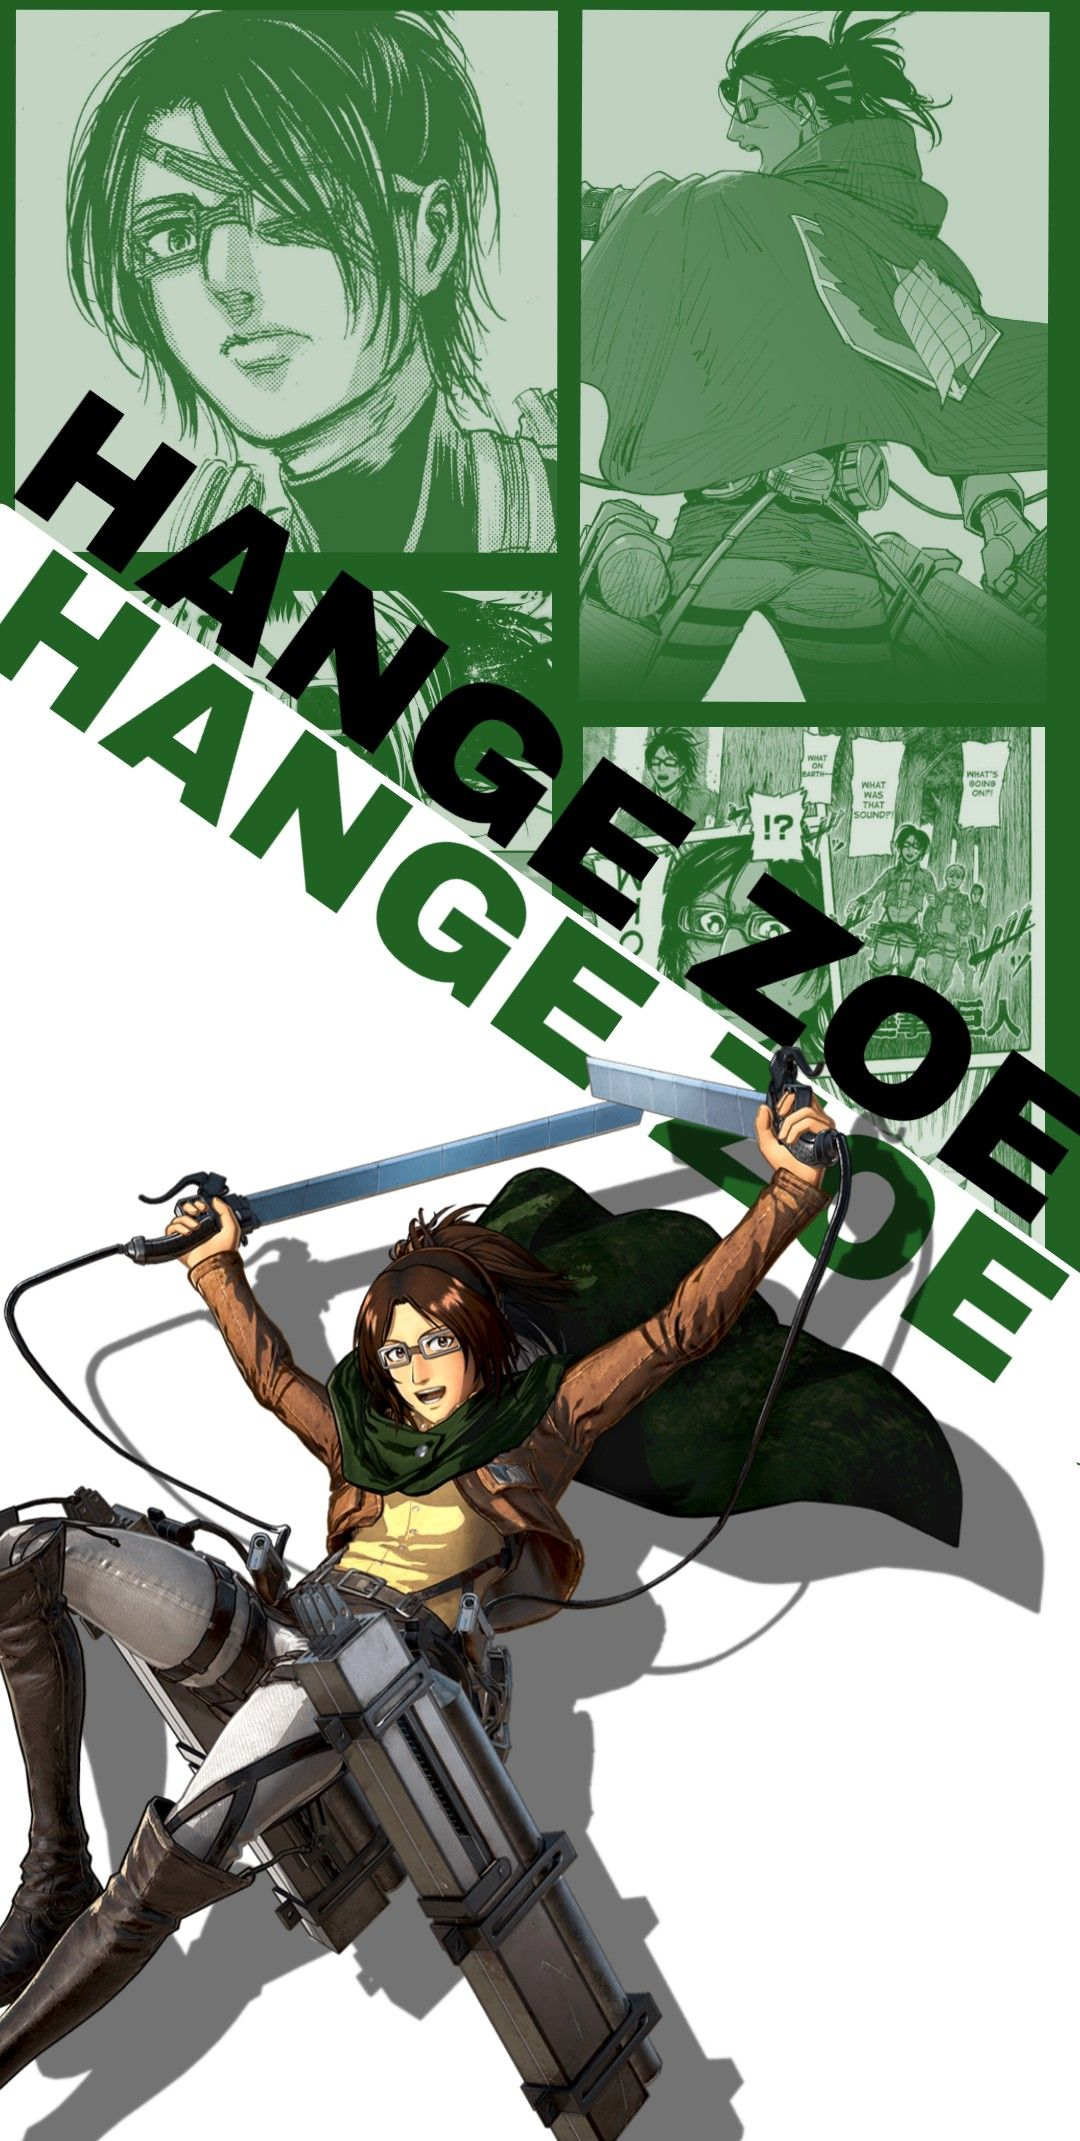 Hange Zoe Wallpaper In 2020 Attack On Titan Anime Hanji Attack On Titan Attack On Titan